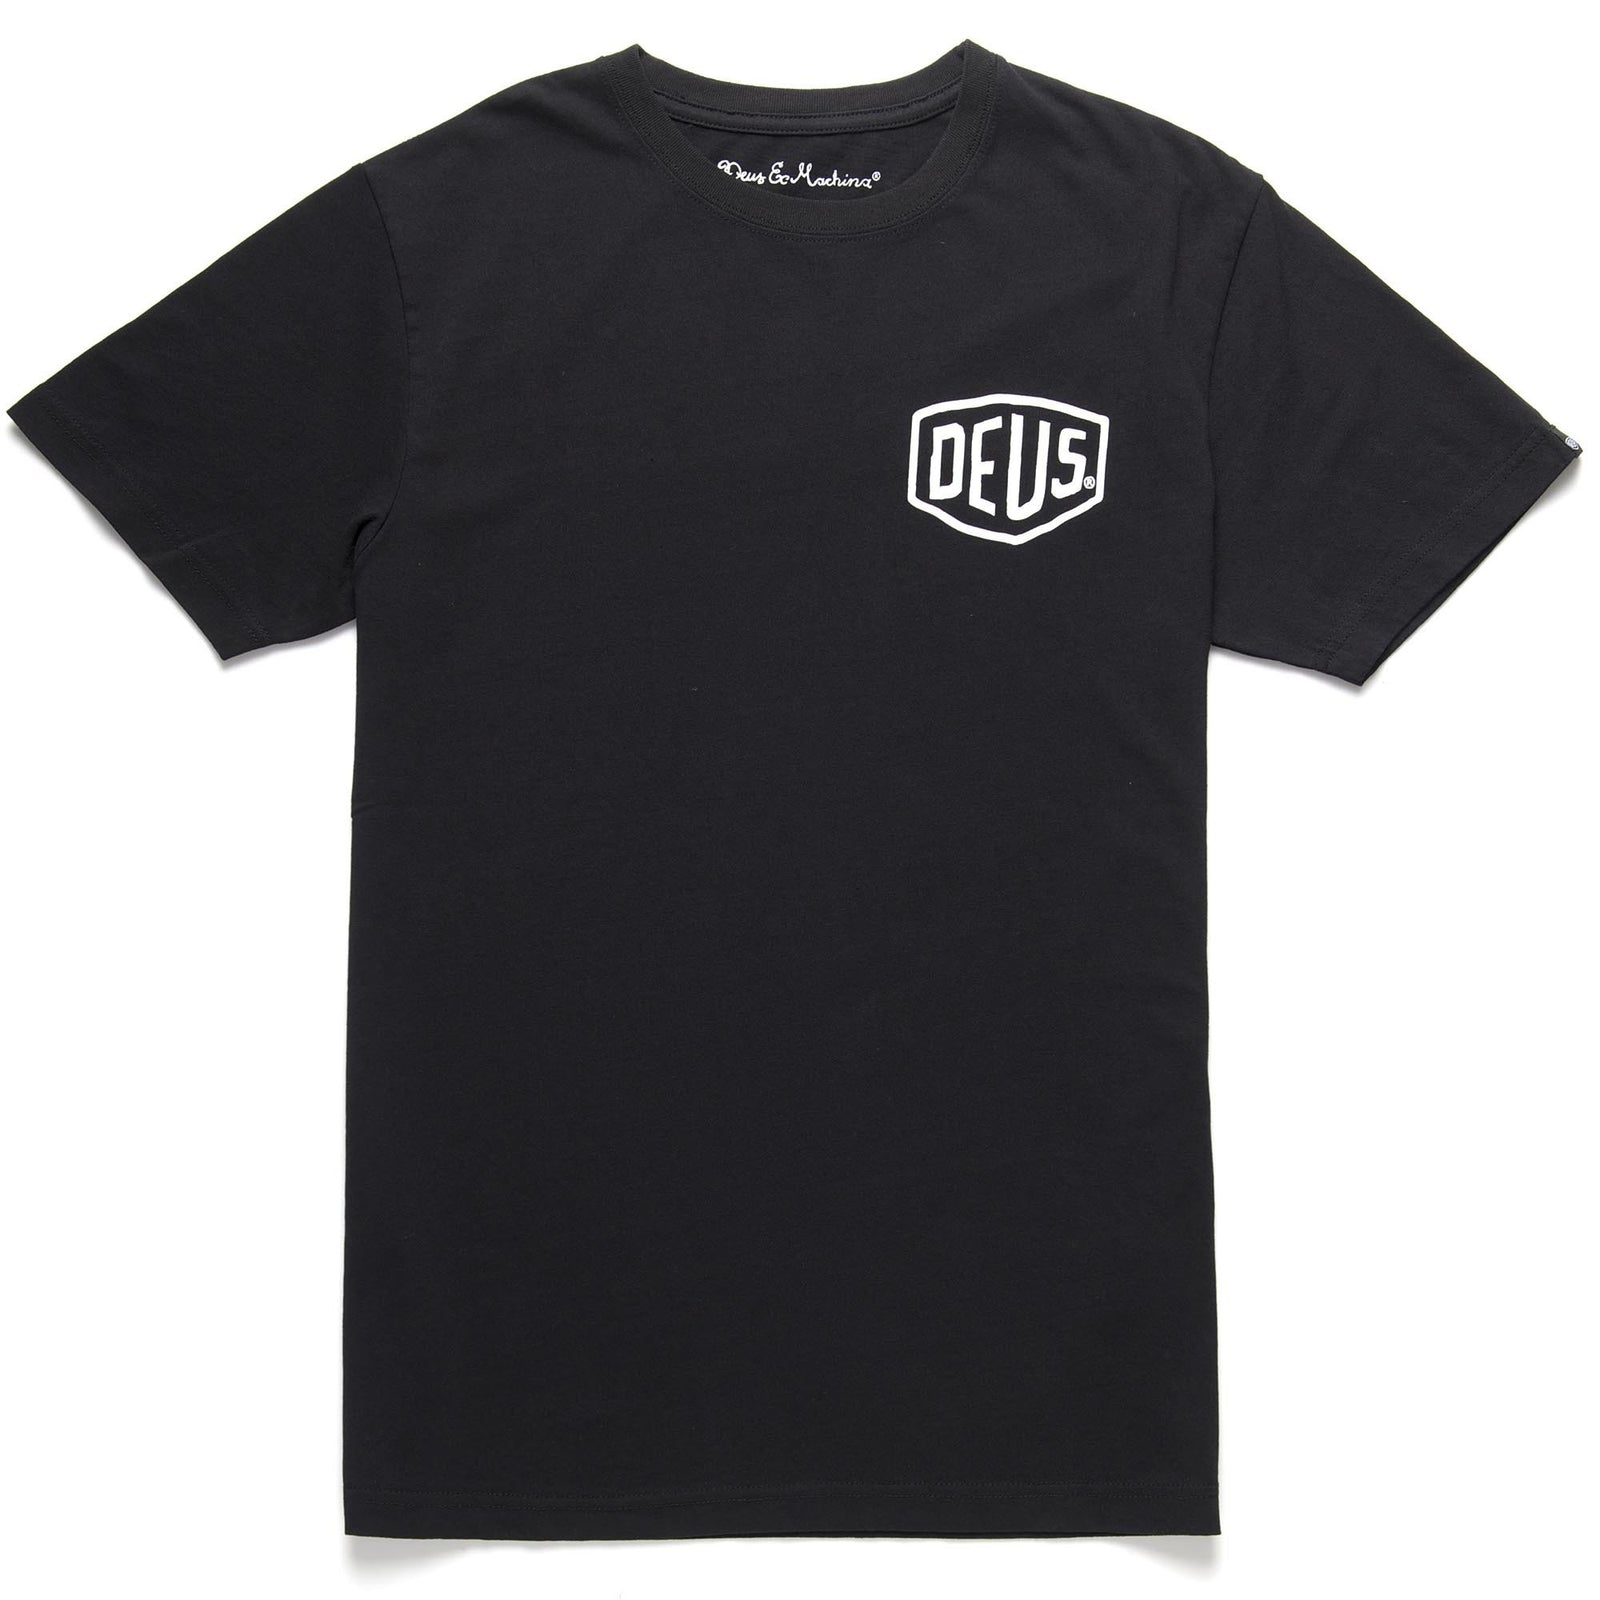 Deus Milano Address T-Shirt - Black